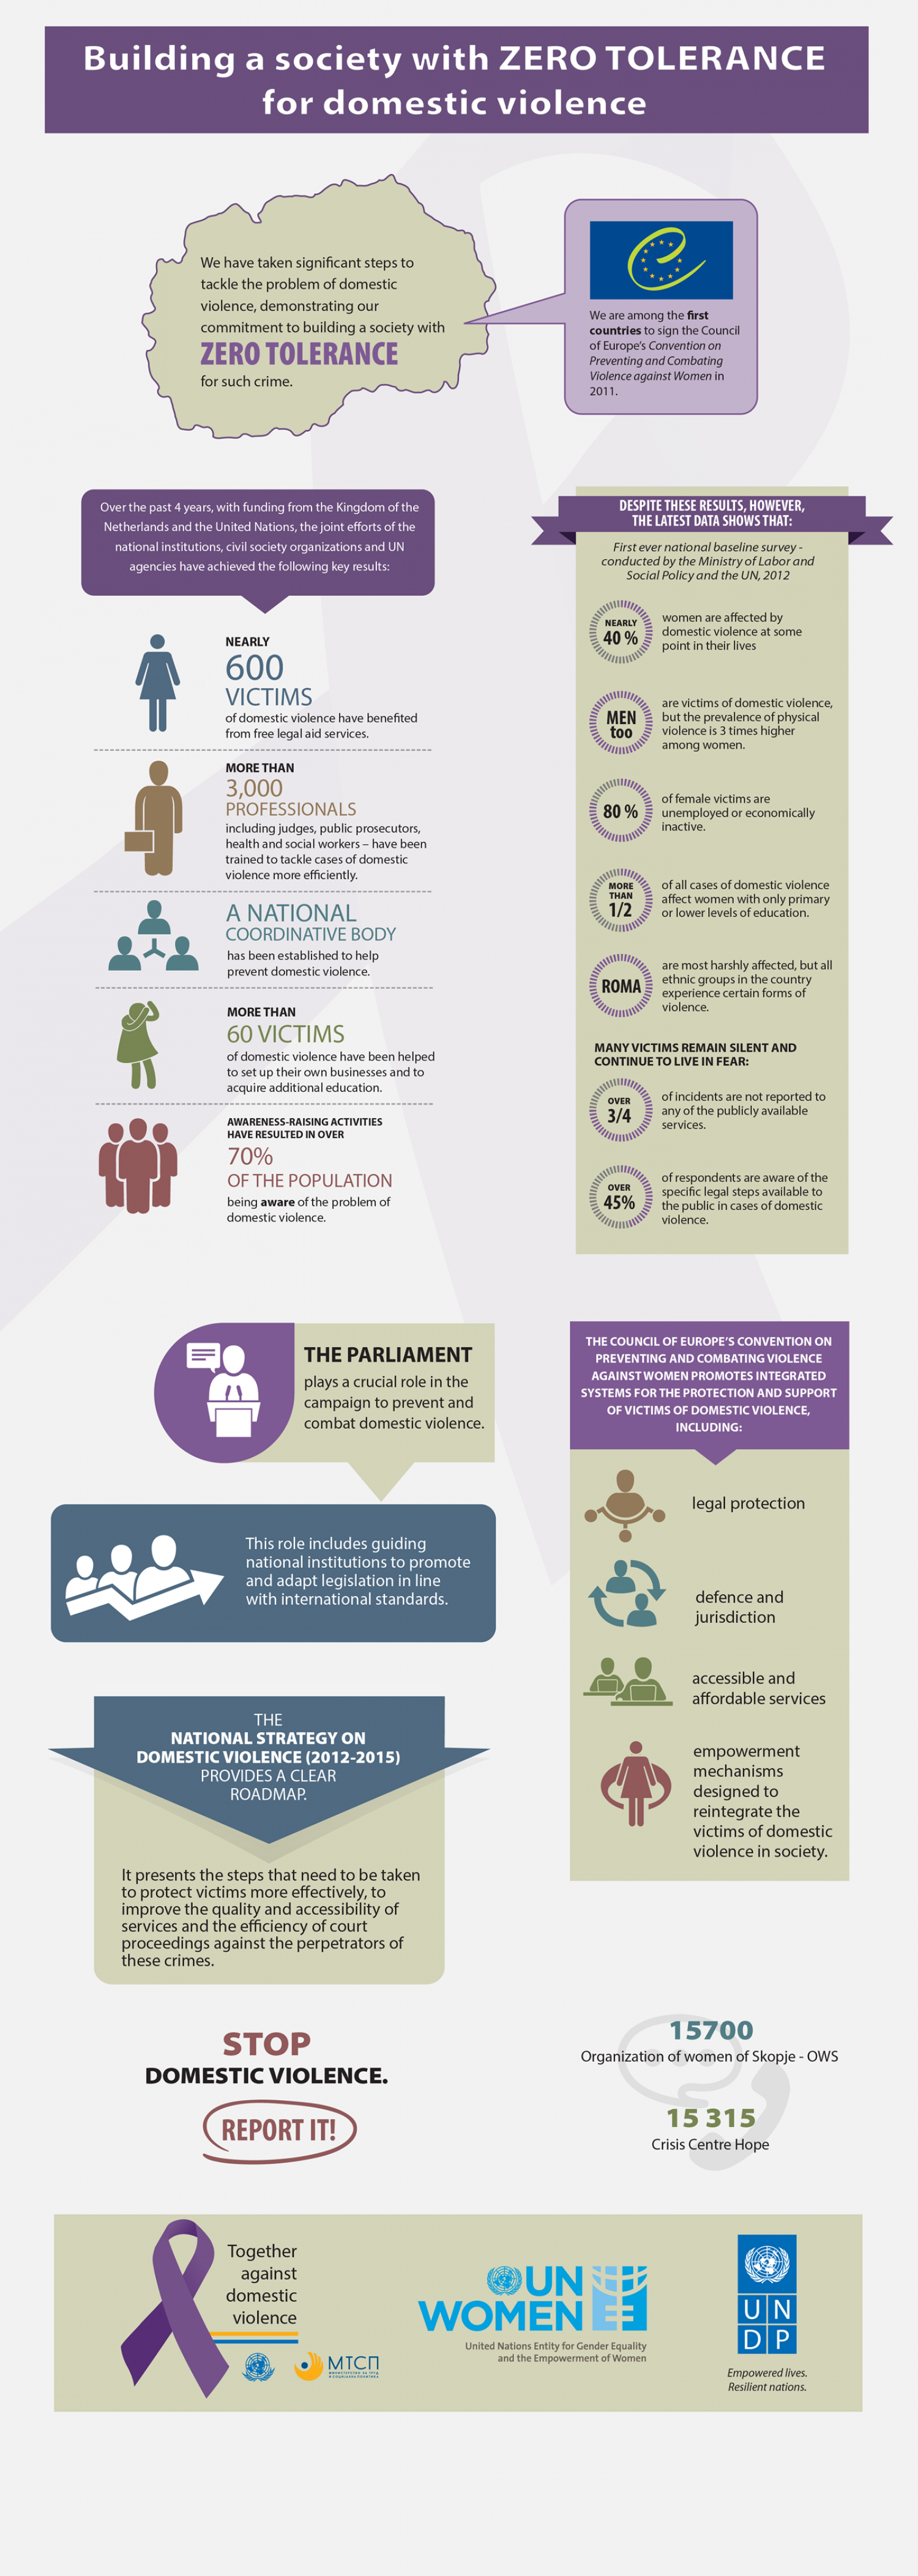 Building a society with ZERO TOLERANCE for domestic violence Infographic